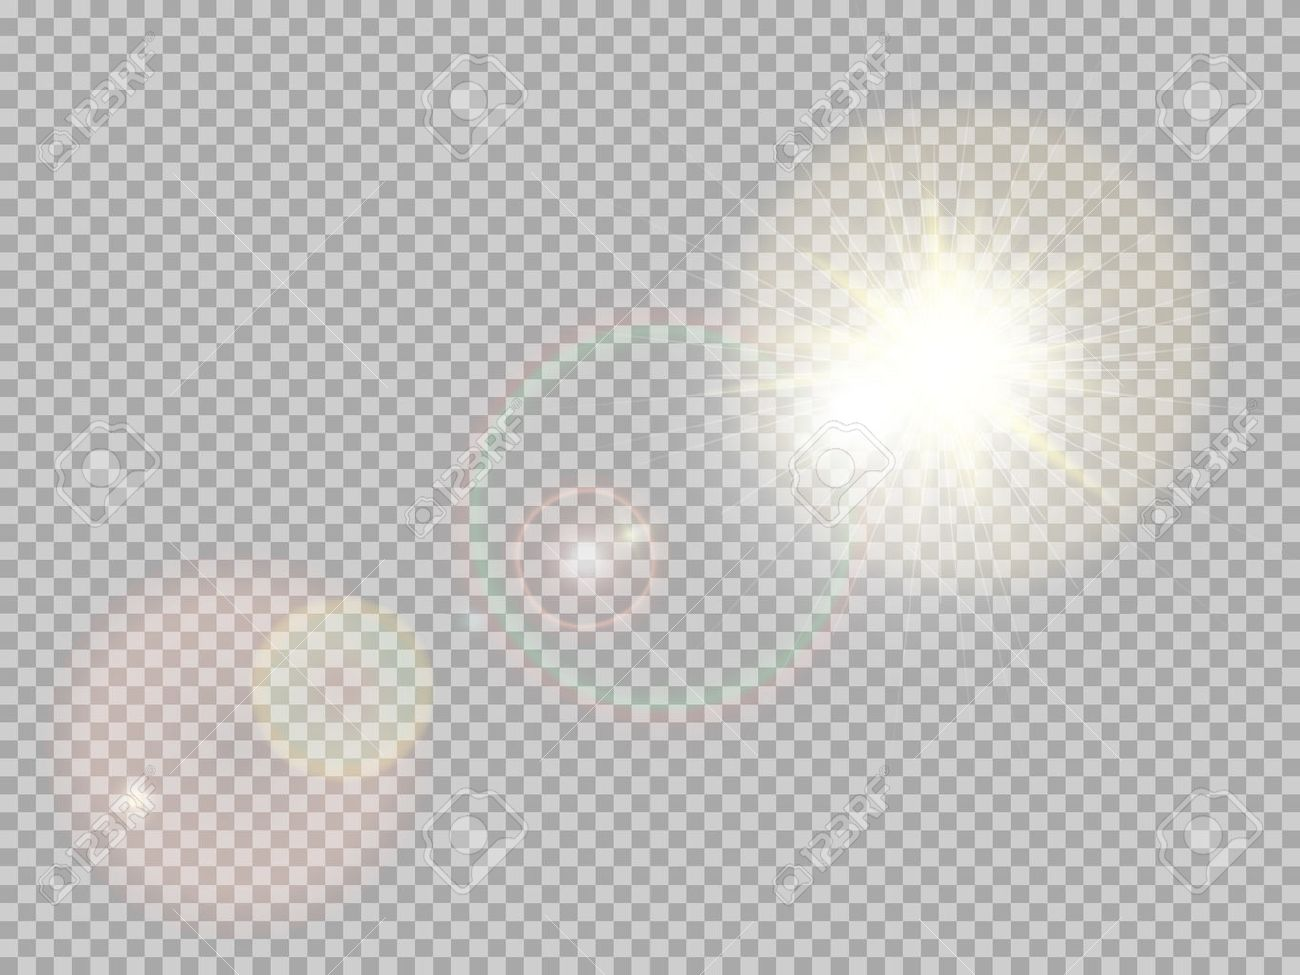 Transparent sunlight special lens flare light effect. Sun flash with rays  and spotlight. Illustration